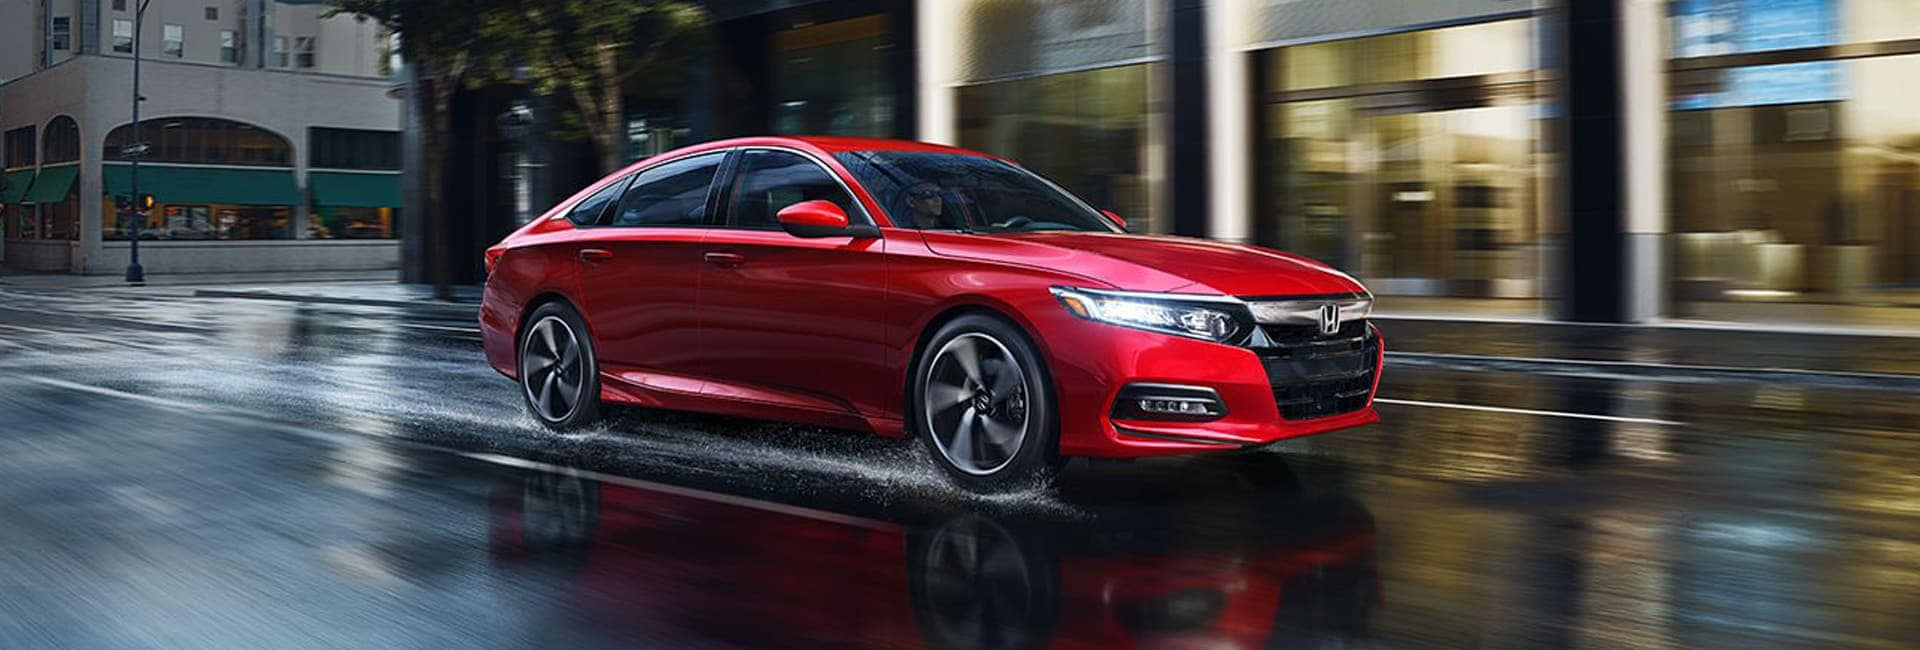 2018 Honda Accord Exterior Features